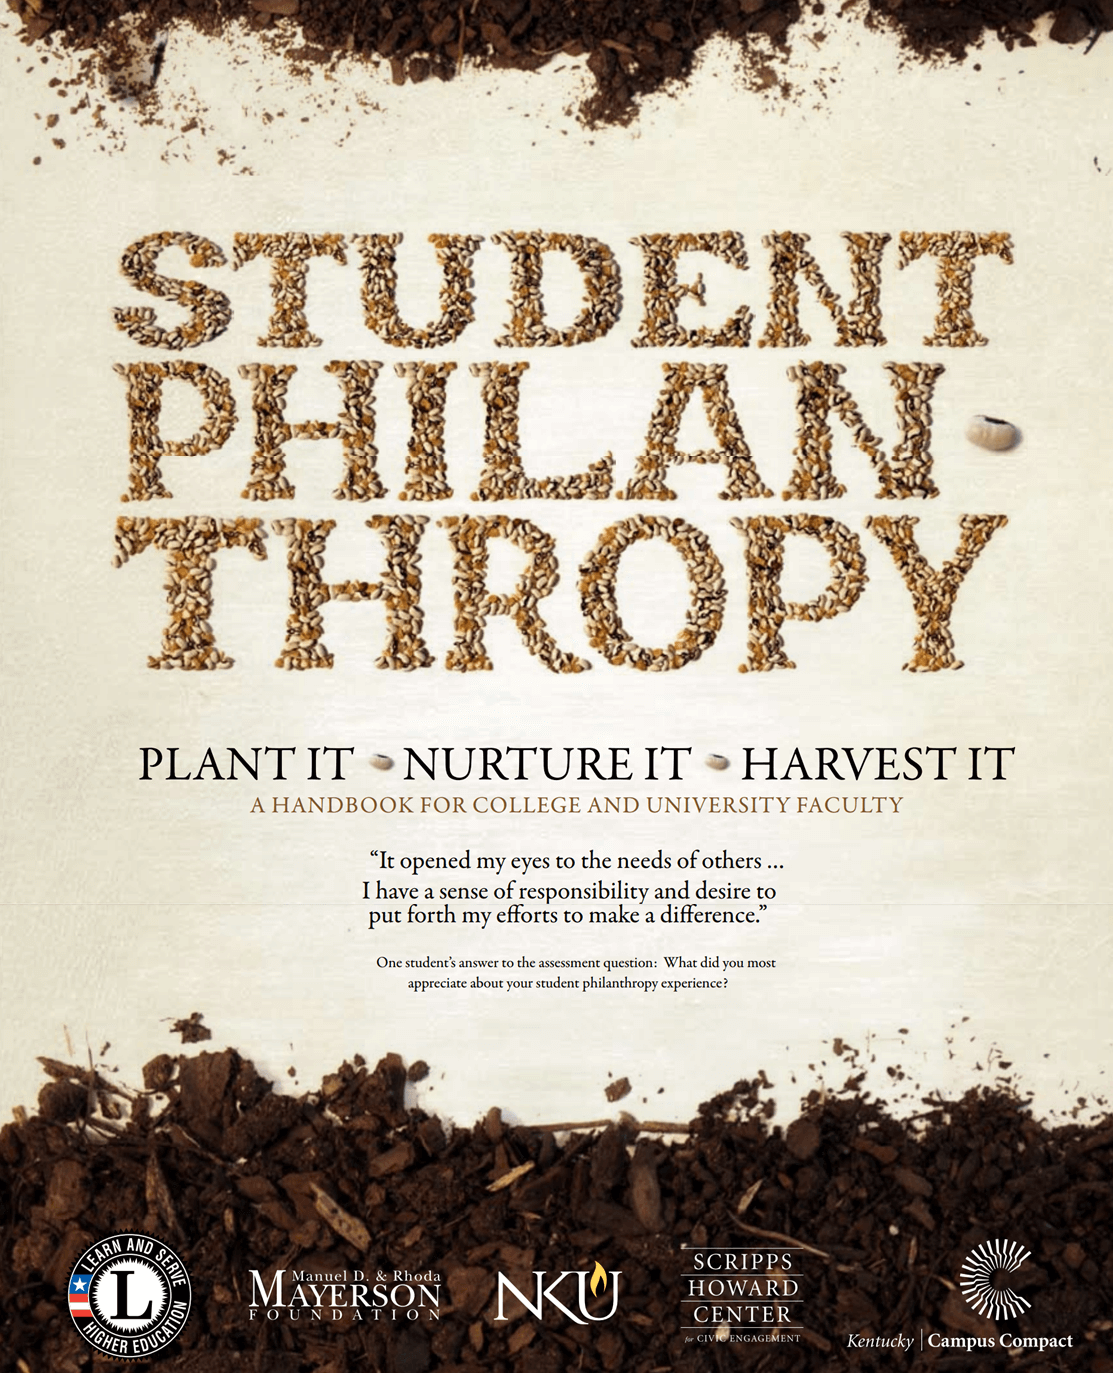 Student Philanthropy: Plant It Nurture It Harvest It: A Handbook for College And University Faculty